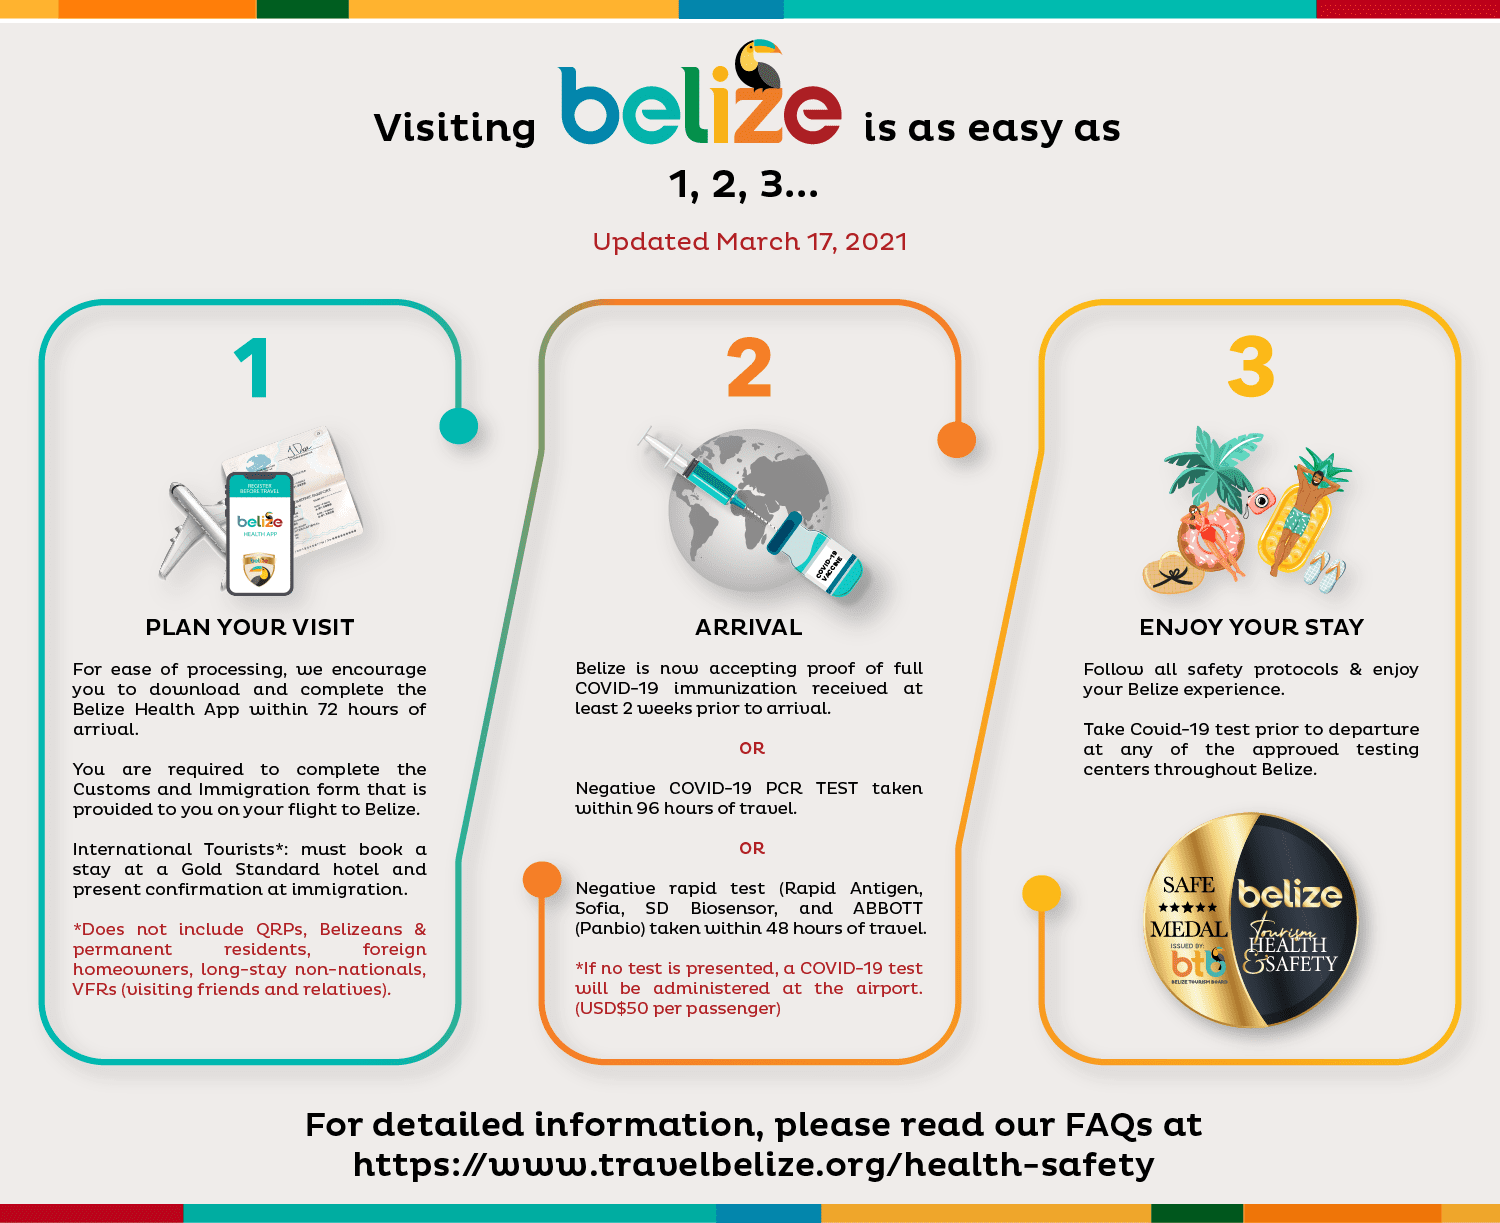 belize-Entry-Requirements_March17